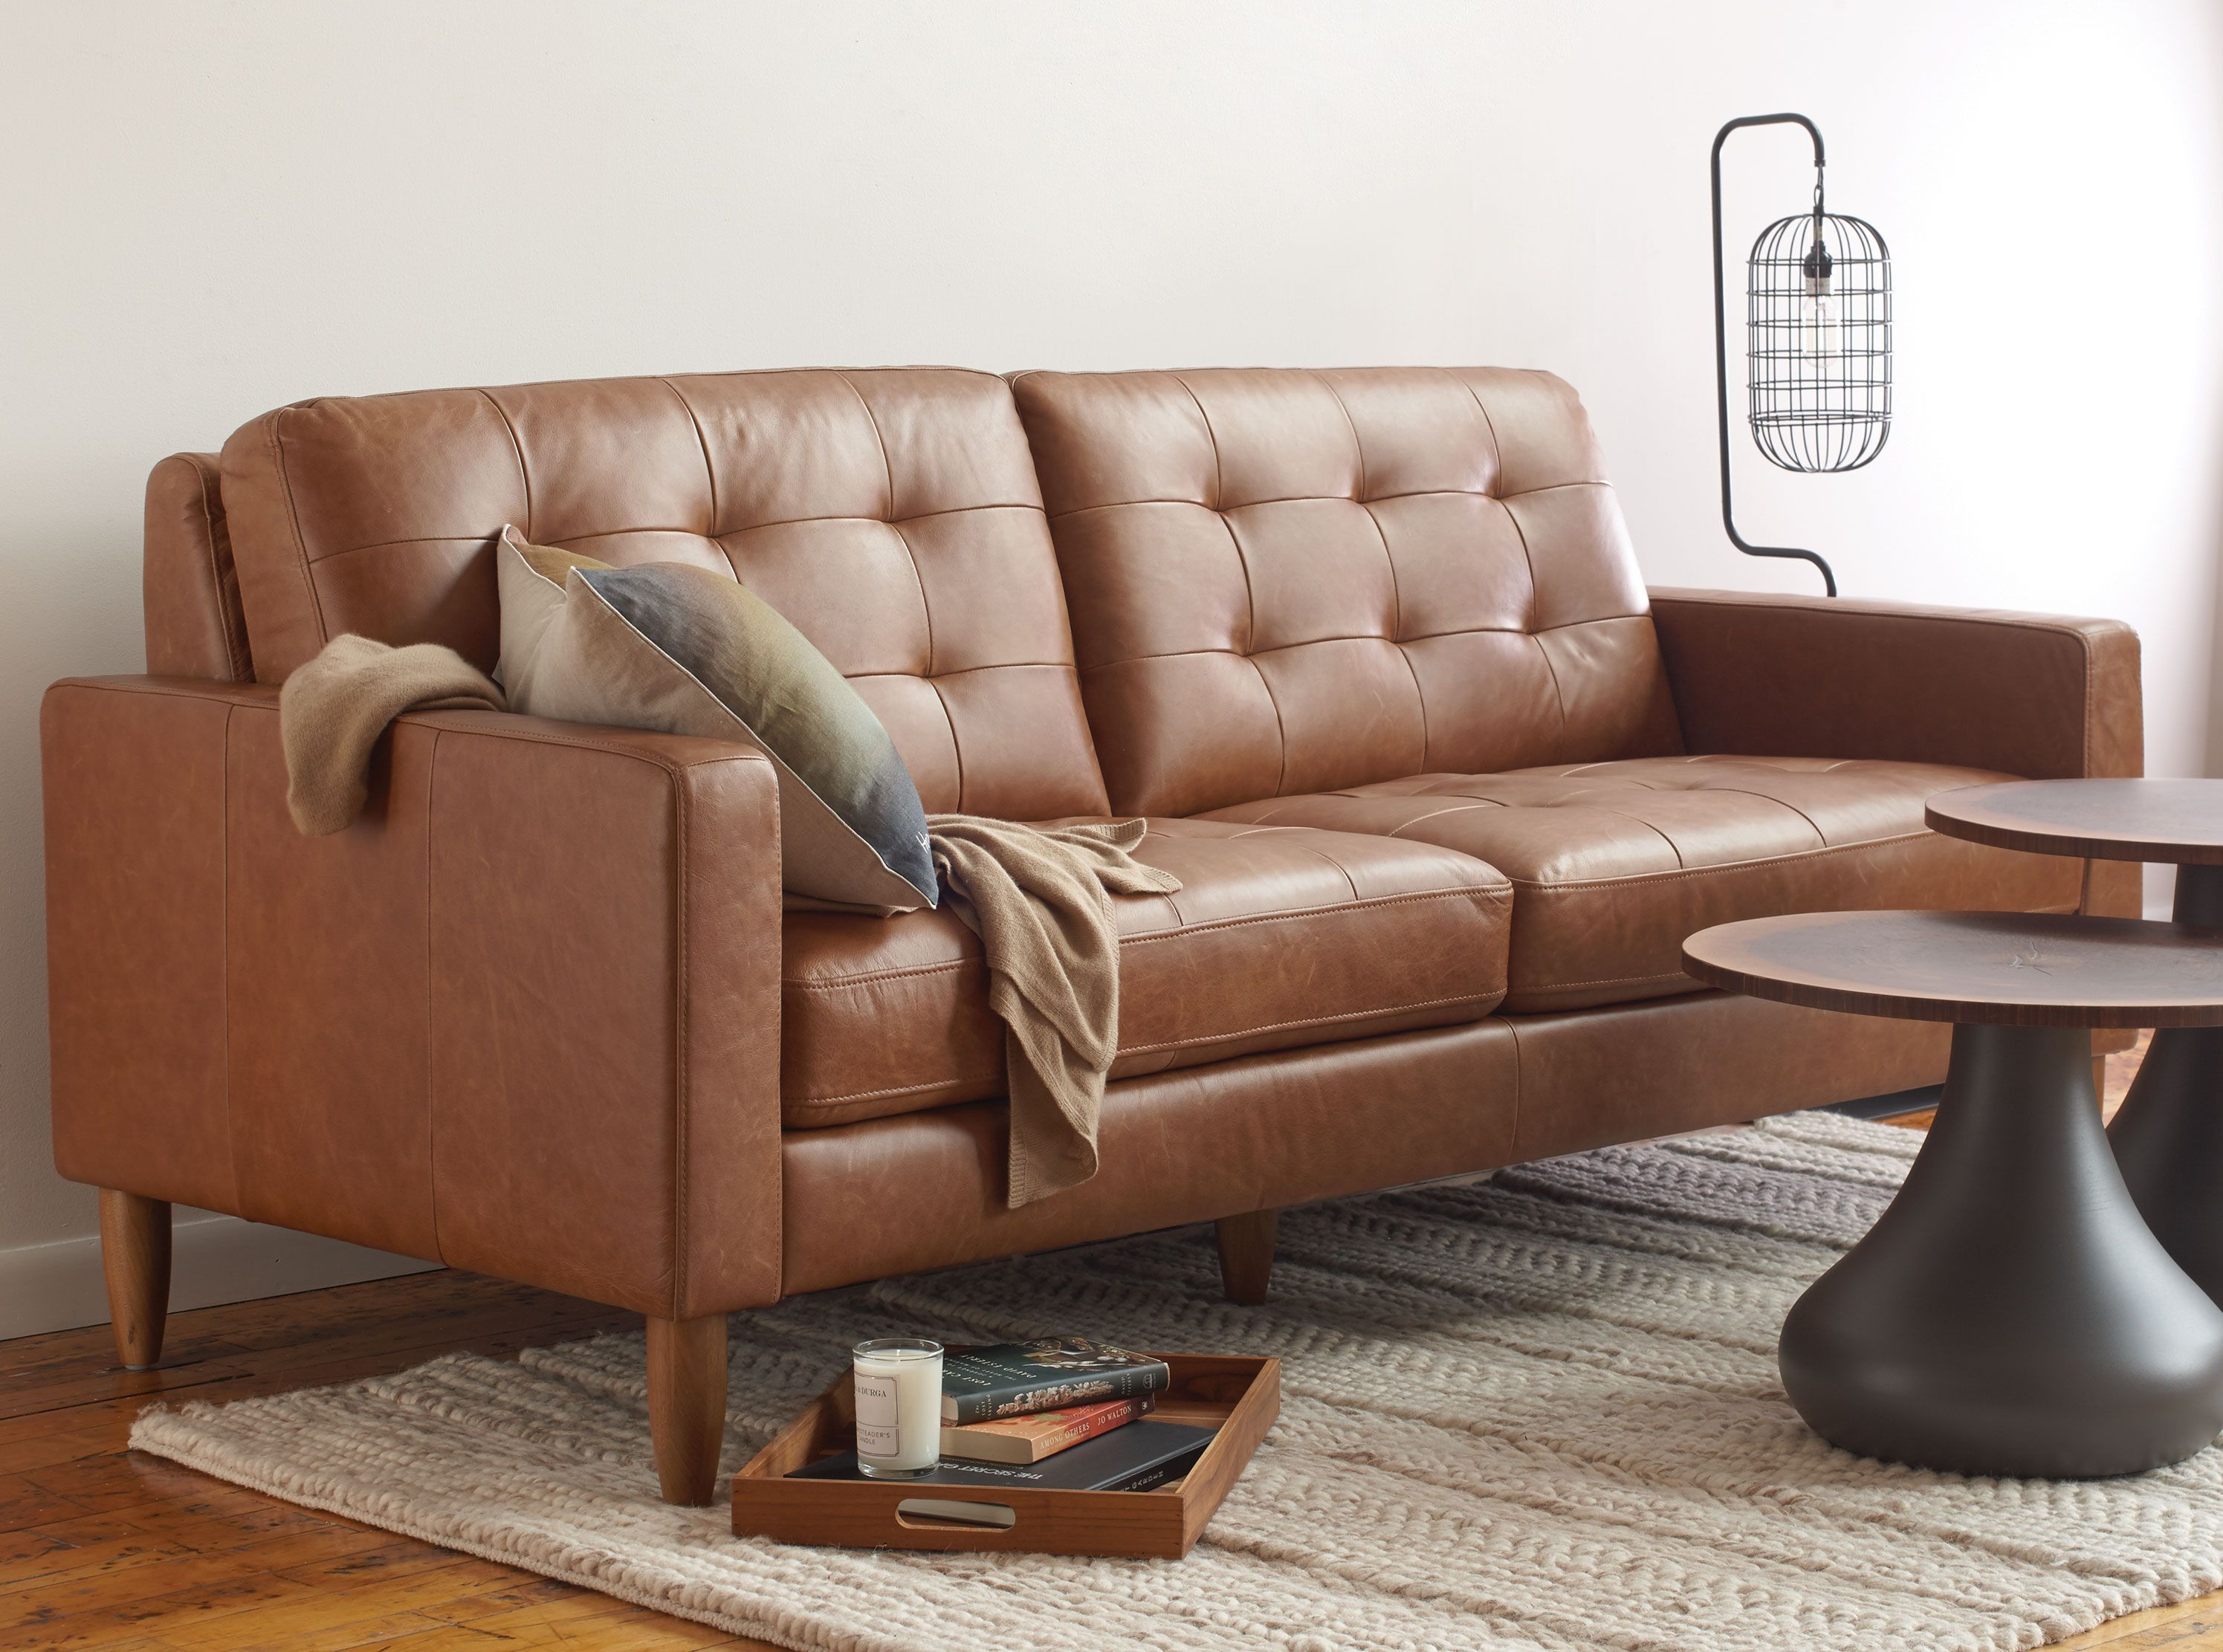 Sydney Sofa In Vintage Leather Kasala Leather Sofa Bed Couches For Sale Leather Sofa Sale